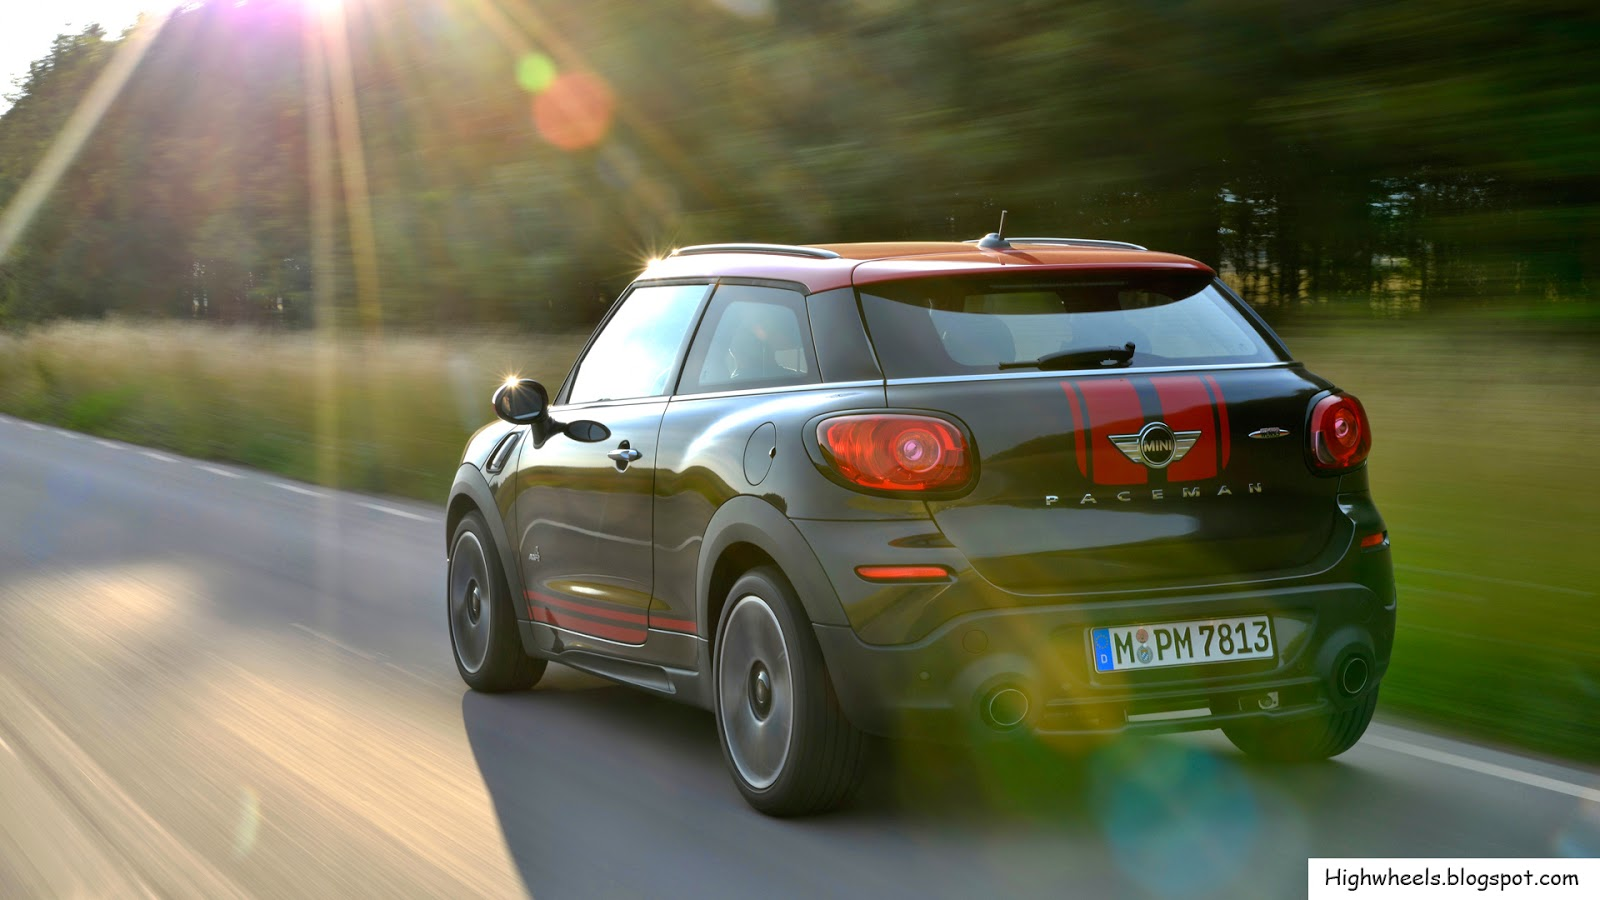 2015 mini paceman john cooper works high wheels. Black Bedroom Furniture Sets. Home Design Ideas